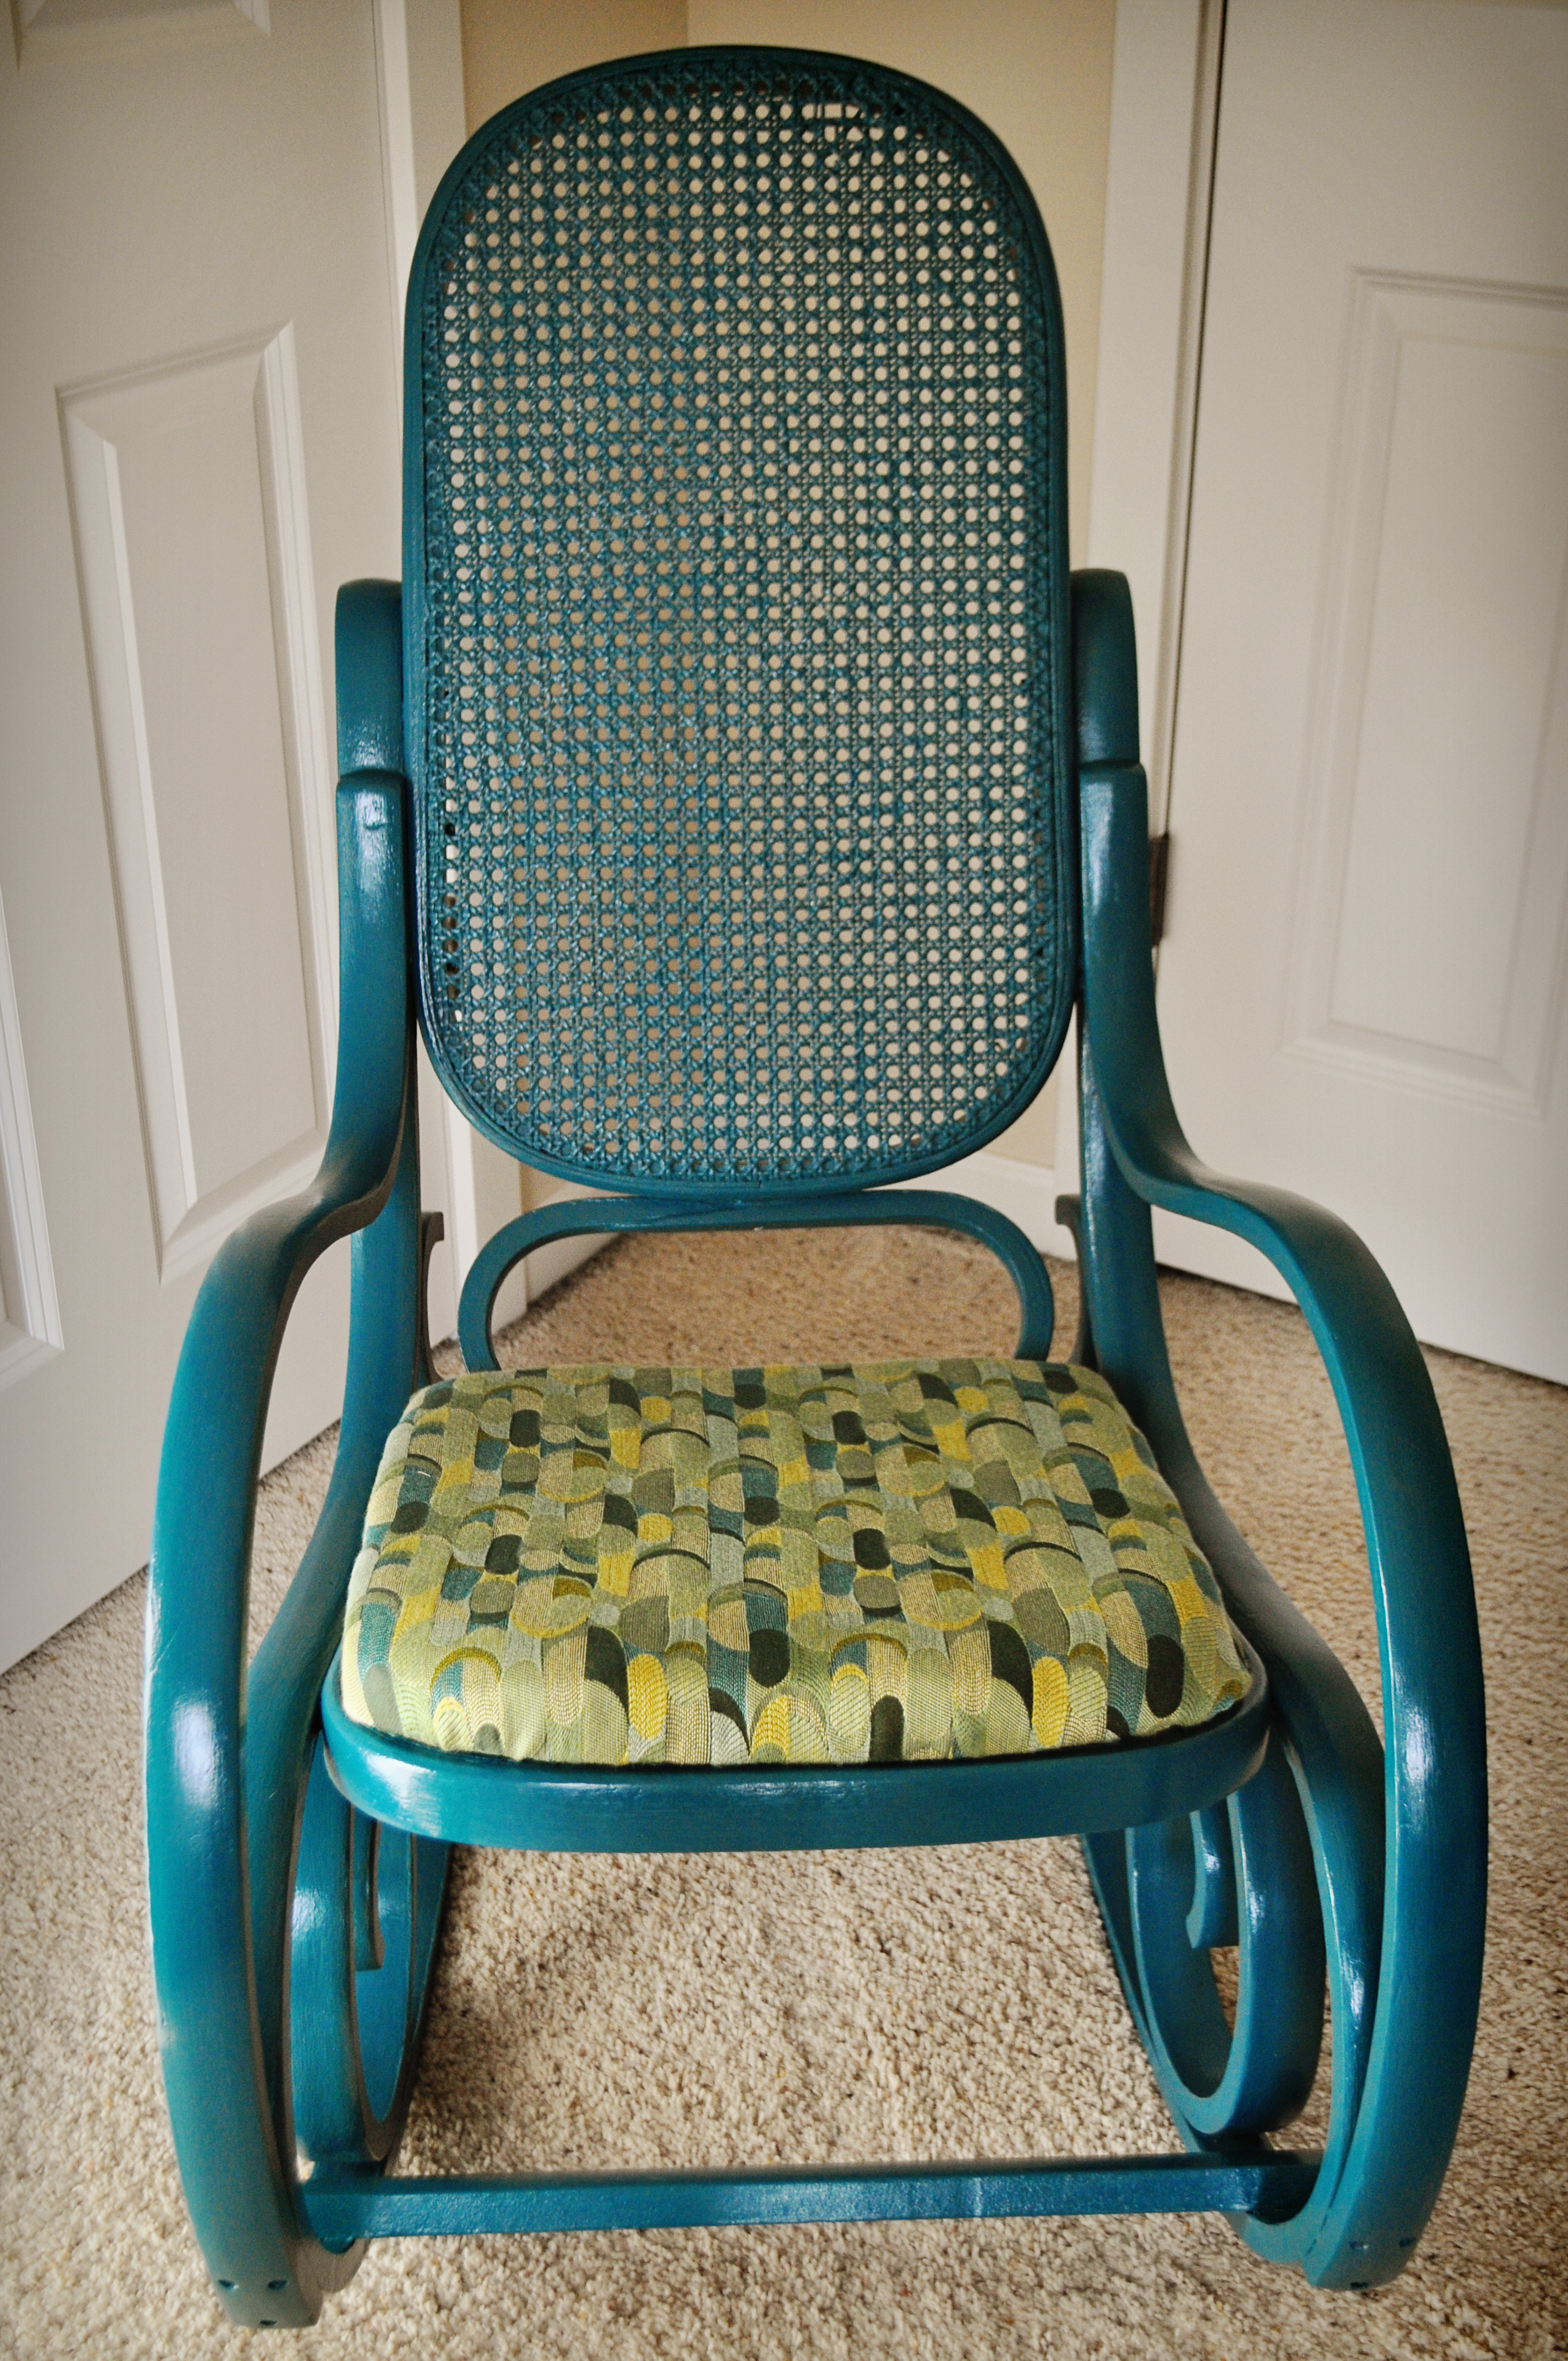 Wicker Rocker Chair Completedwood And Rattan Rocking Chair Diy Newbies